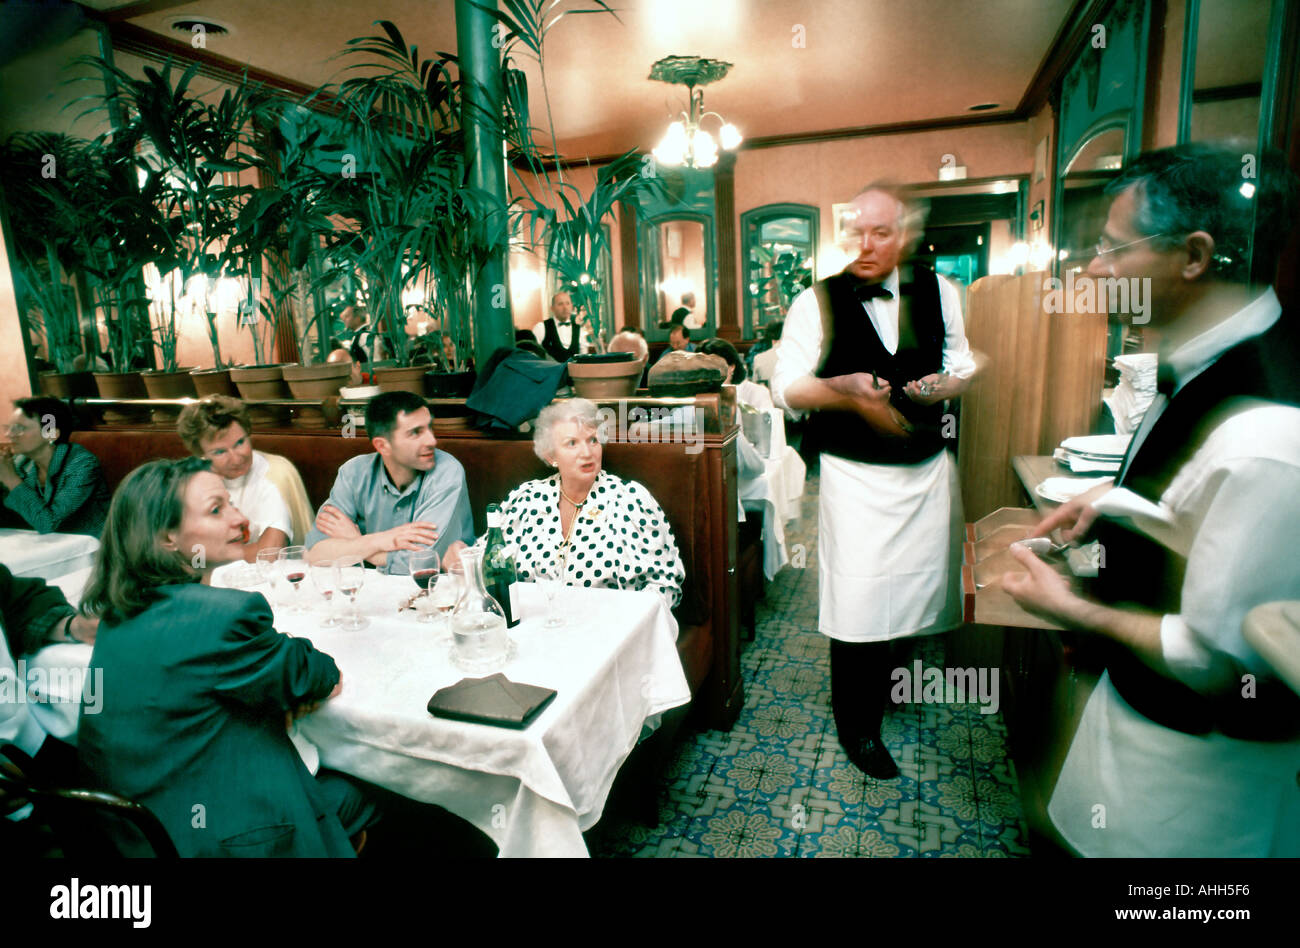 French Restaurant, Paris Bistro 'Au Petit Marguery' , Family Sharing Meals, Talking to Waiters, at Table Inside - Stock Image